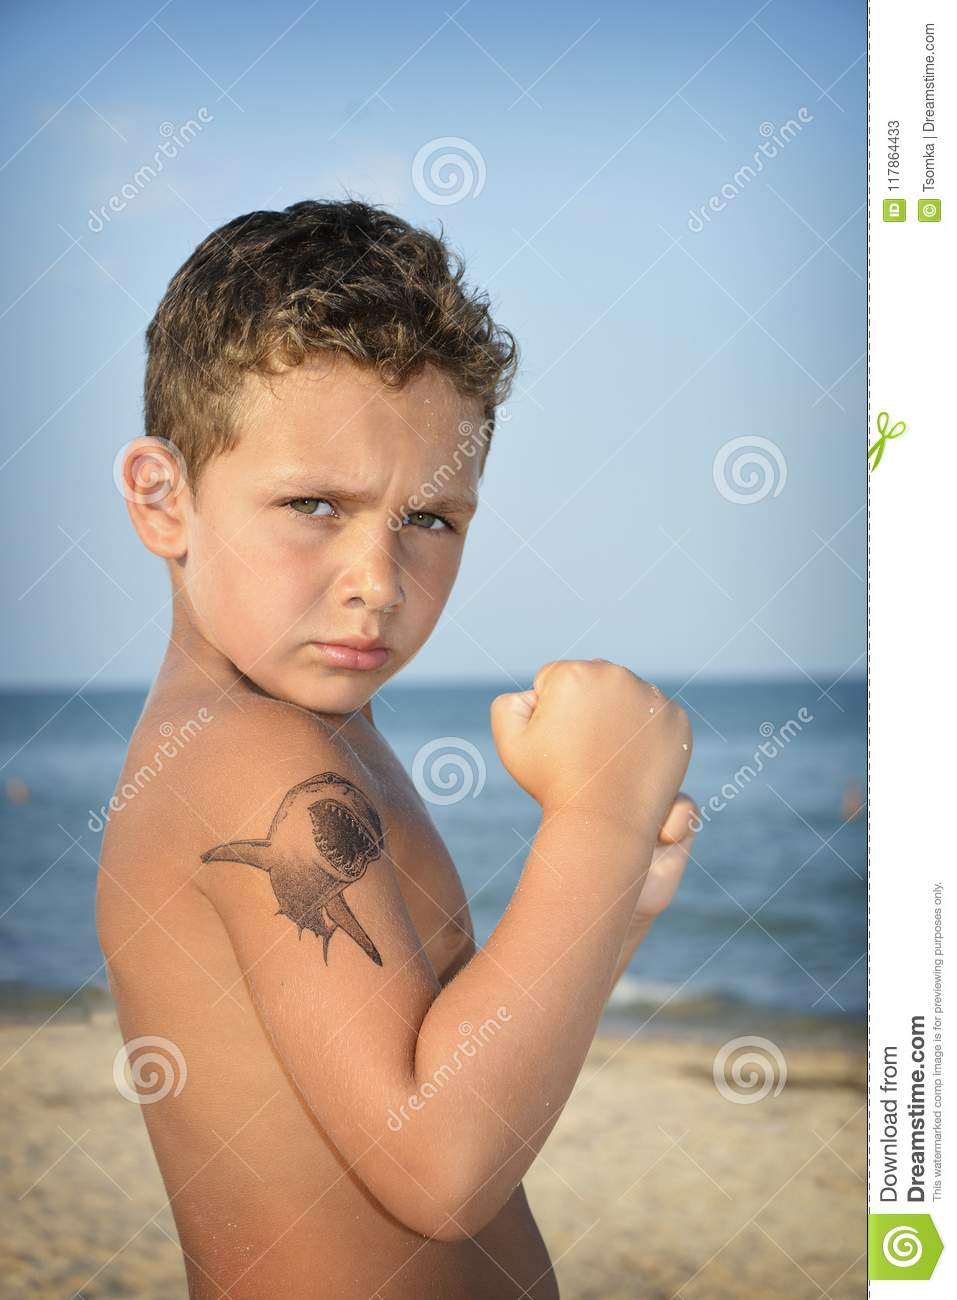 In summer, at sea, a little boy shows his muscles.